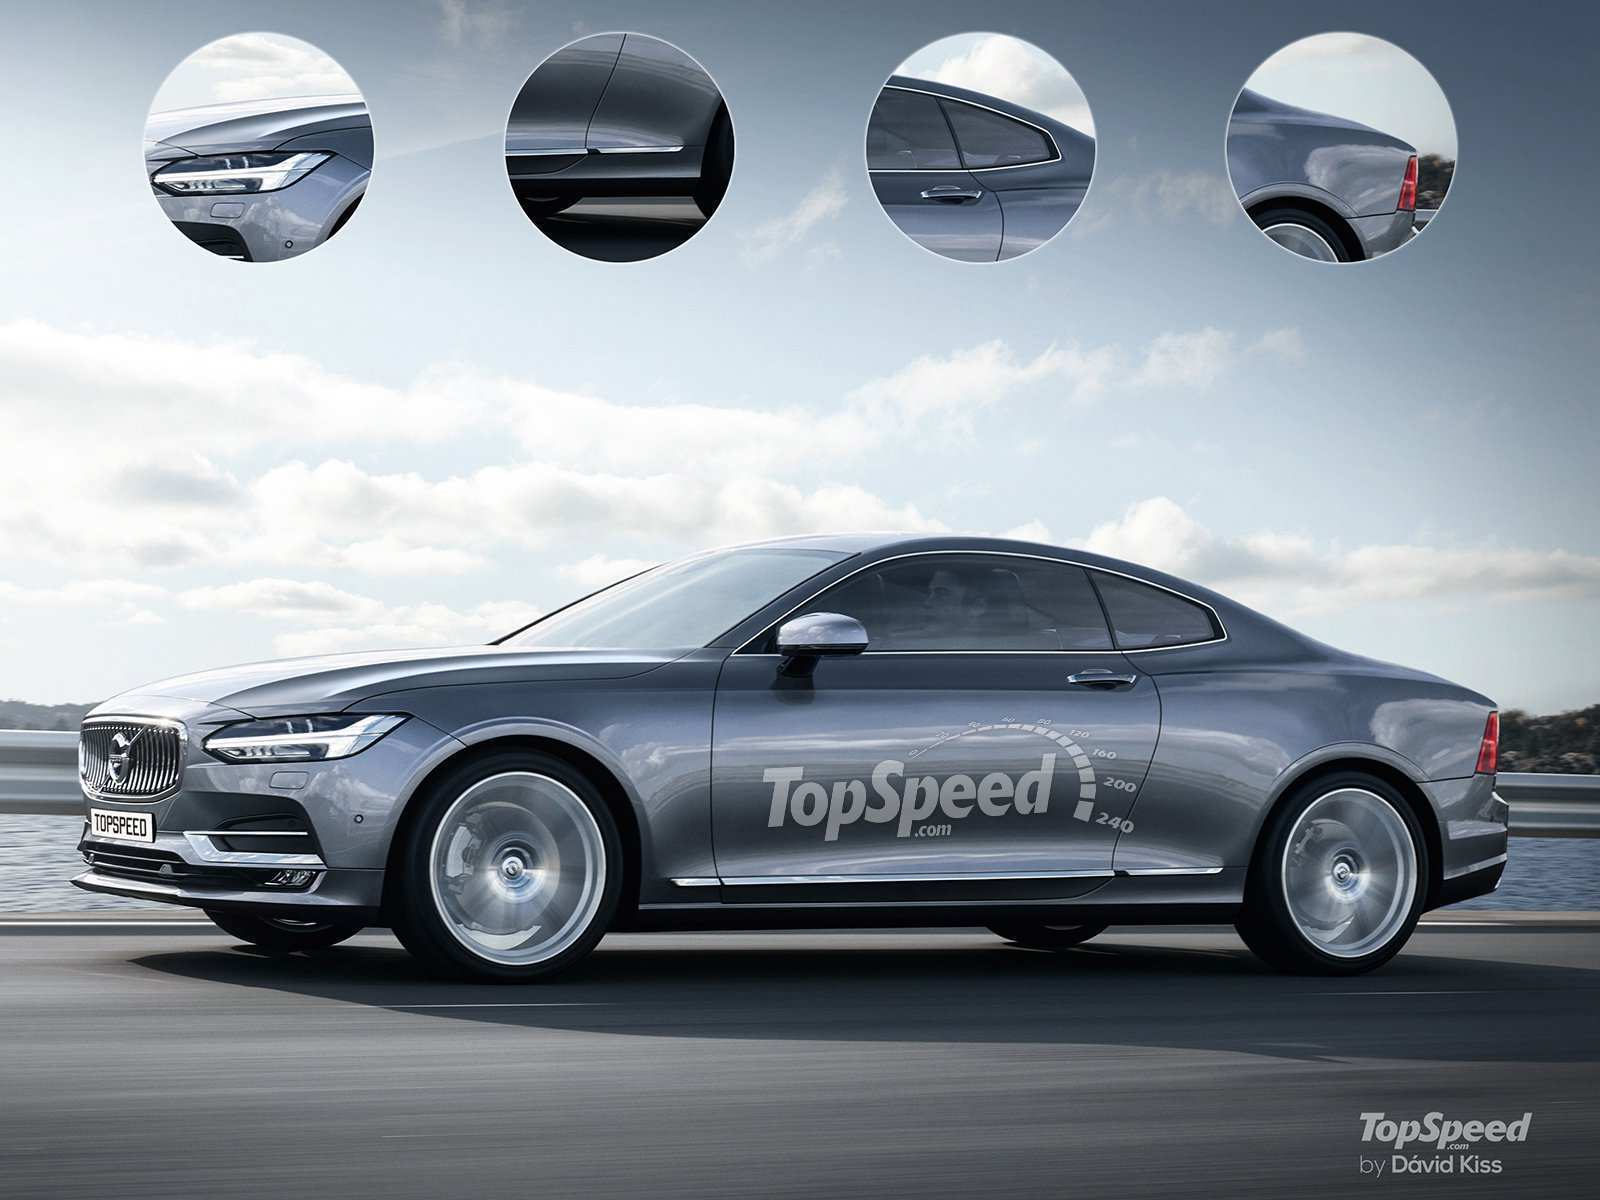 76 All New Volvo S90 2020 Spesification for Volvo S90 2020